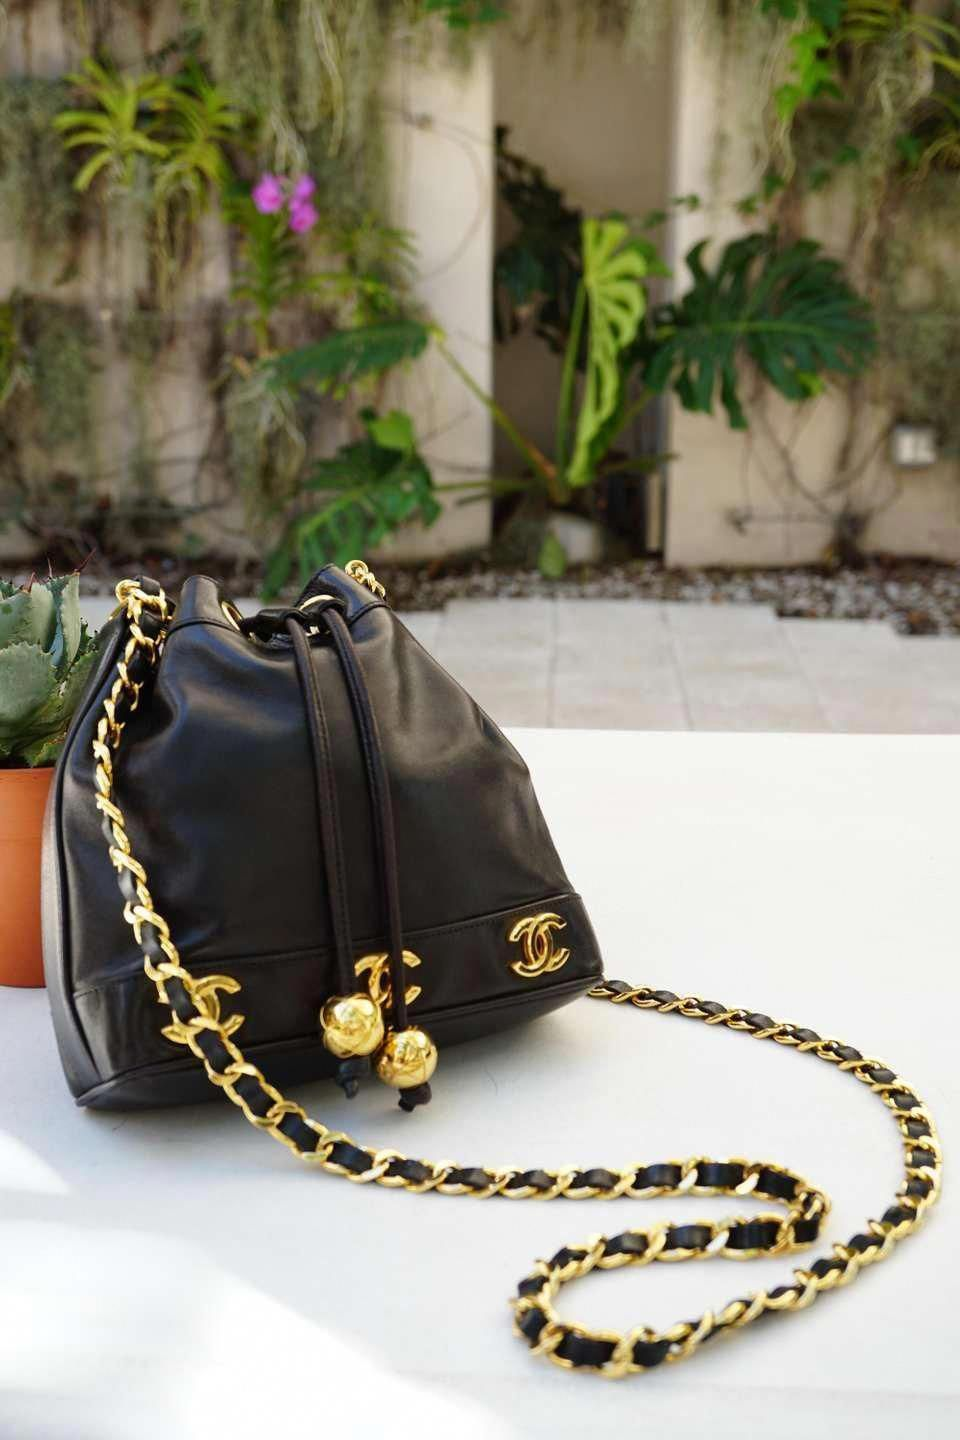 e6b3a293bebab8 For Sale on 1stdibs - Vintage Chanel mini black lambskin vintage 90s CC  crossbody rare tote 1997 VINTAGE 21 Years Gold Hardware Long strap with  classic ...